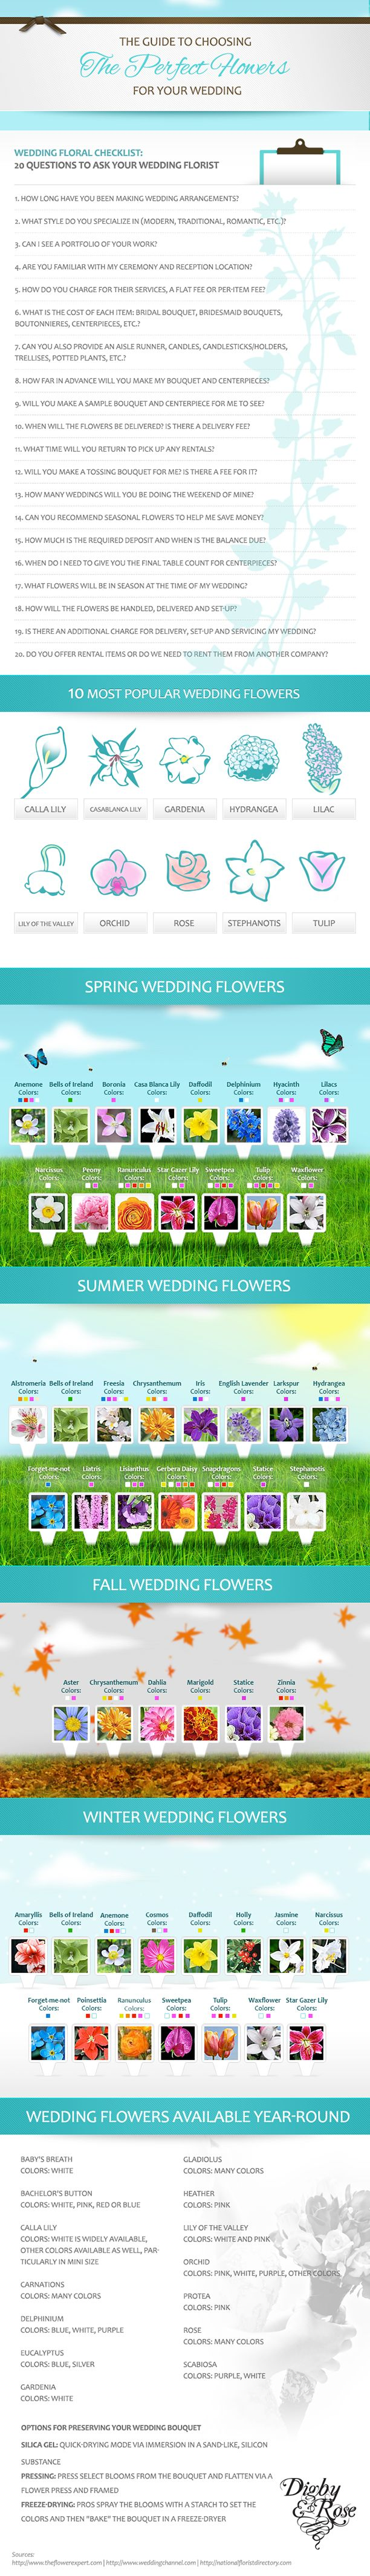 64 best infographic images on pinterest info graphics guide to choosing the best wedding flowers junglespirit Choice Image